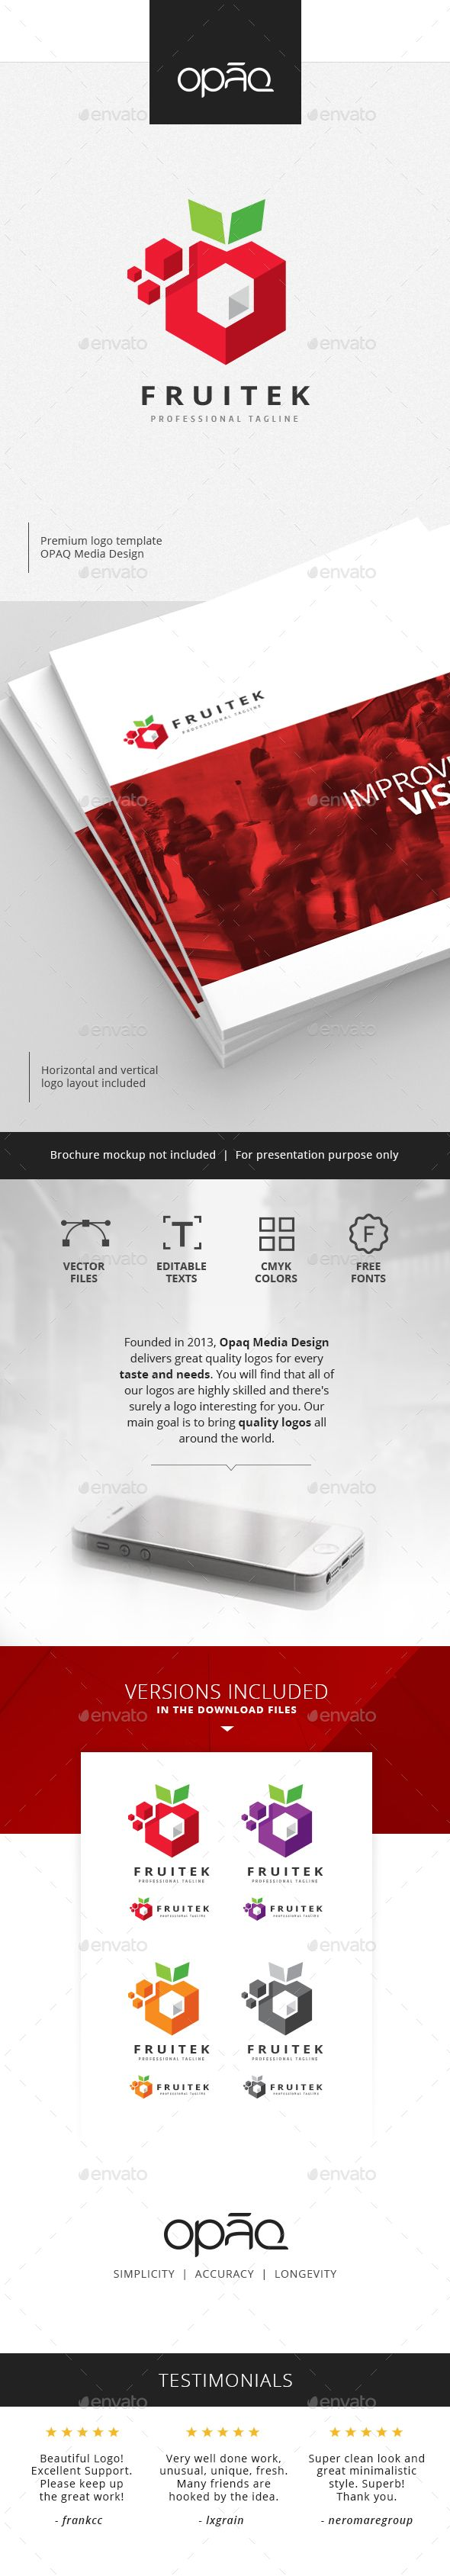 best 351 logo design templates ideas on pinterest logo templates